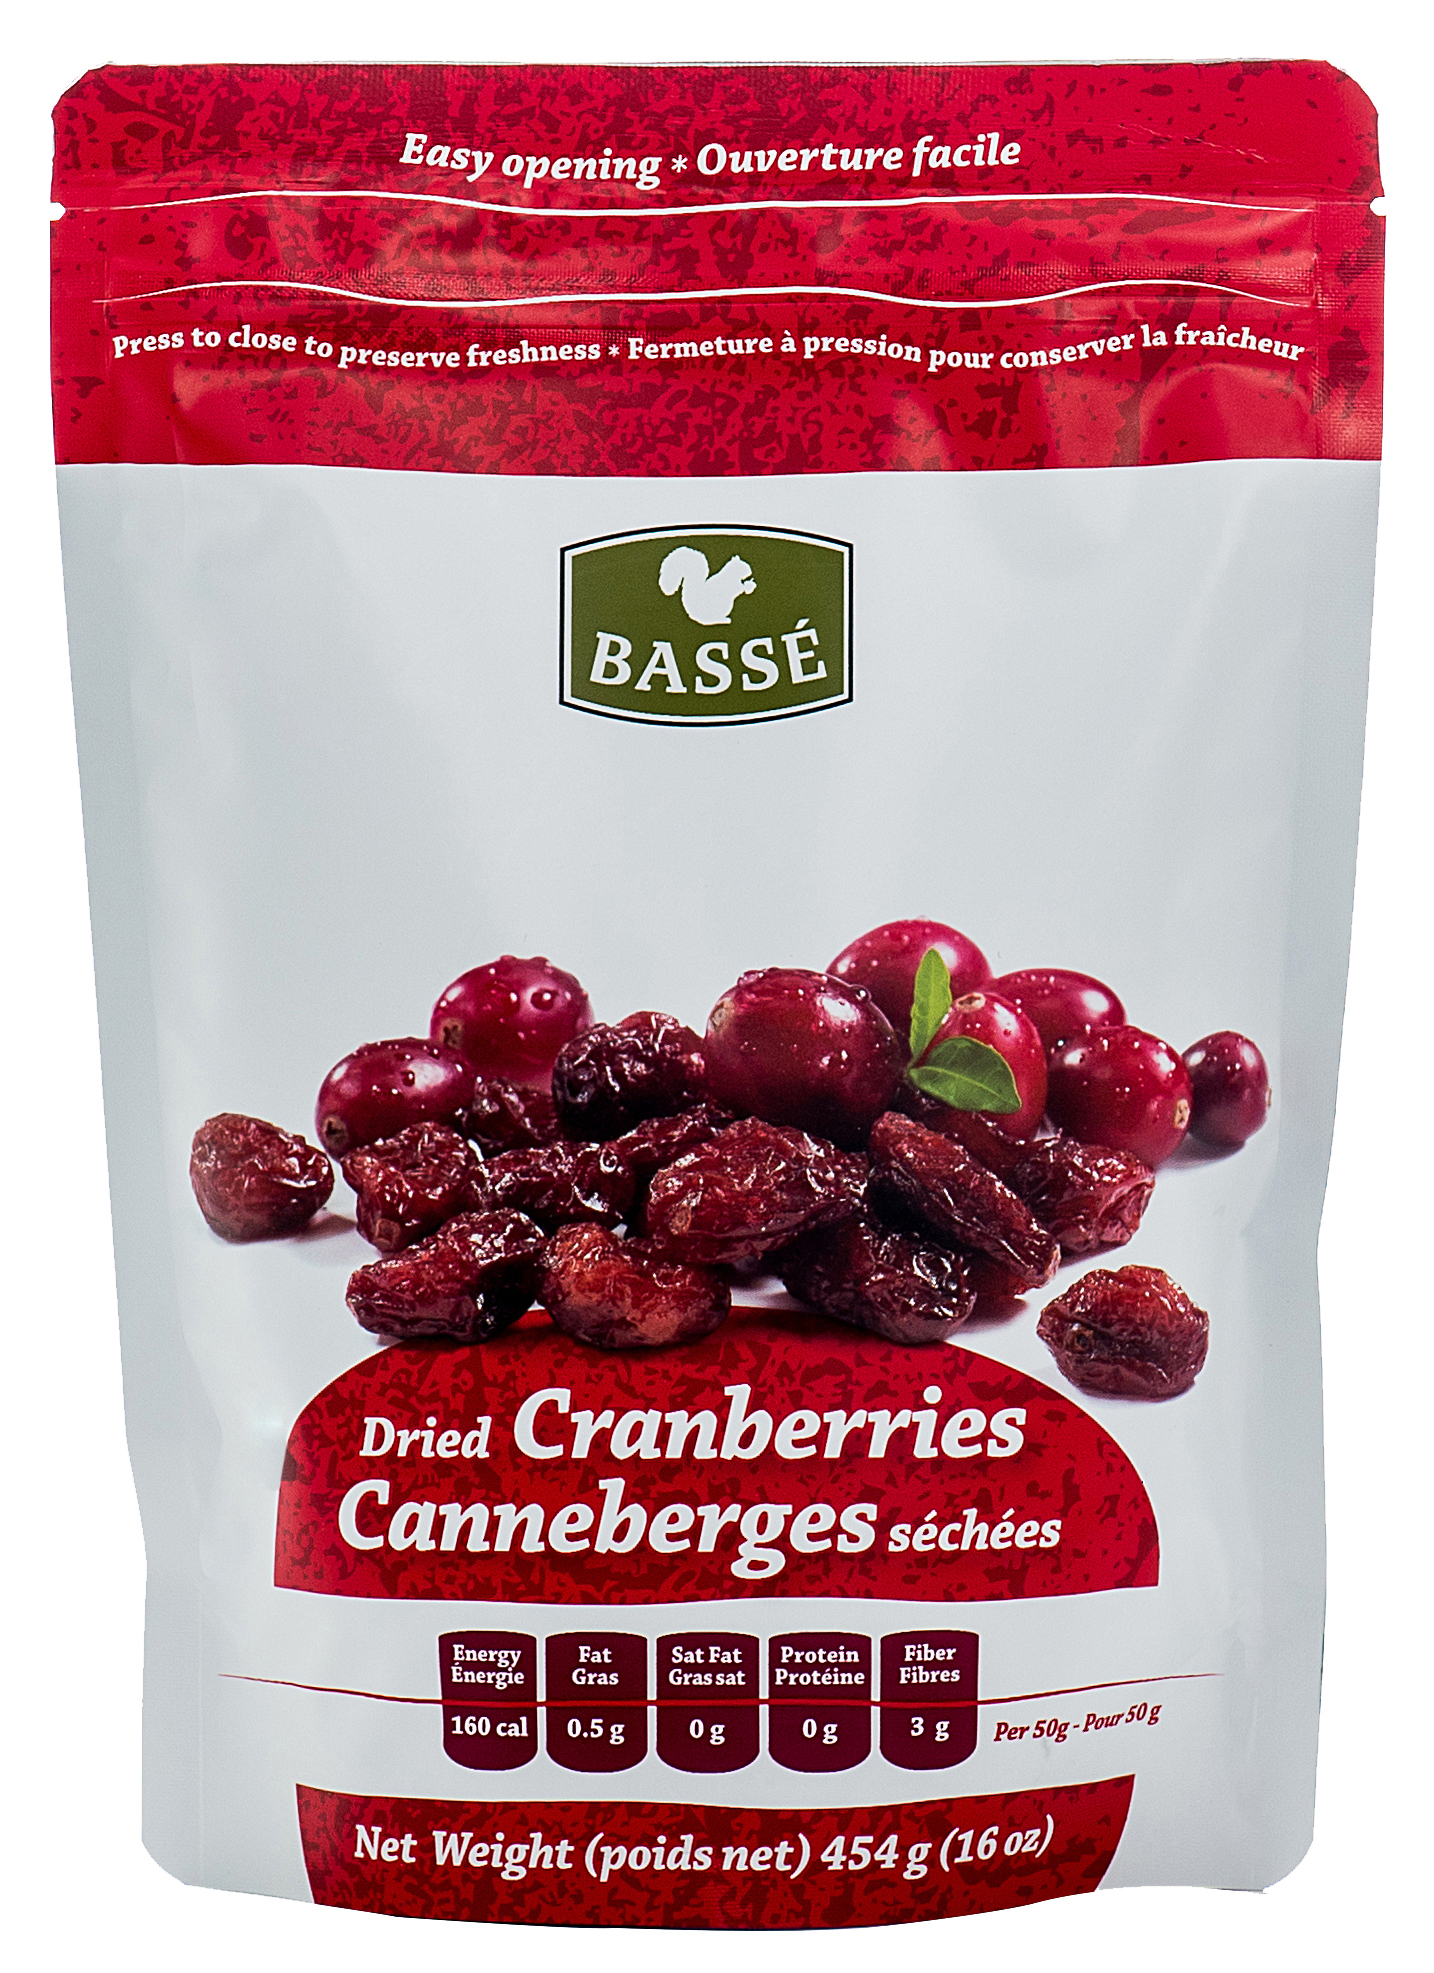 Basse Dried Fruits Cranberries (1lb.) Eat Healthier With This Good Snack; Crazy... by Basse Nuts